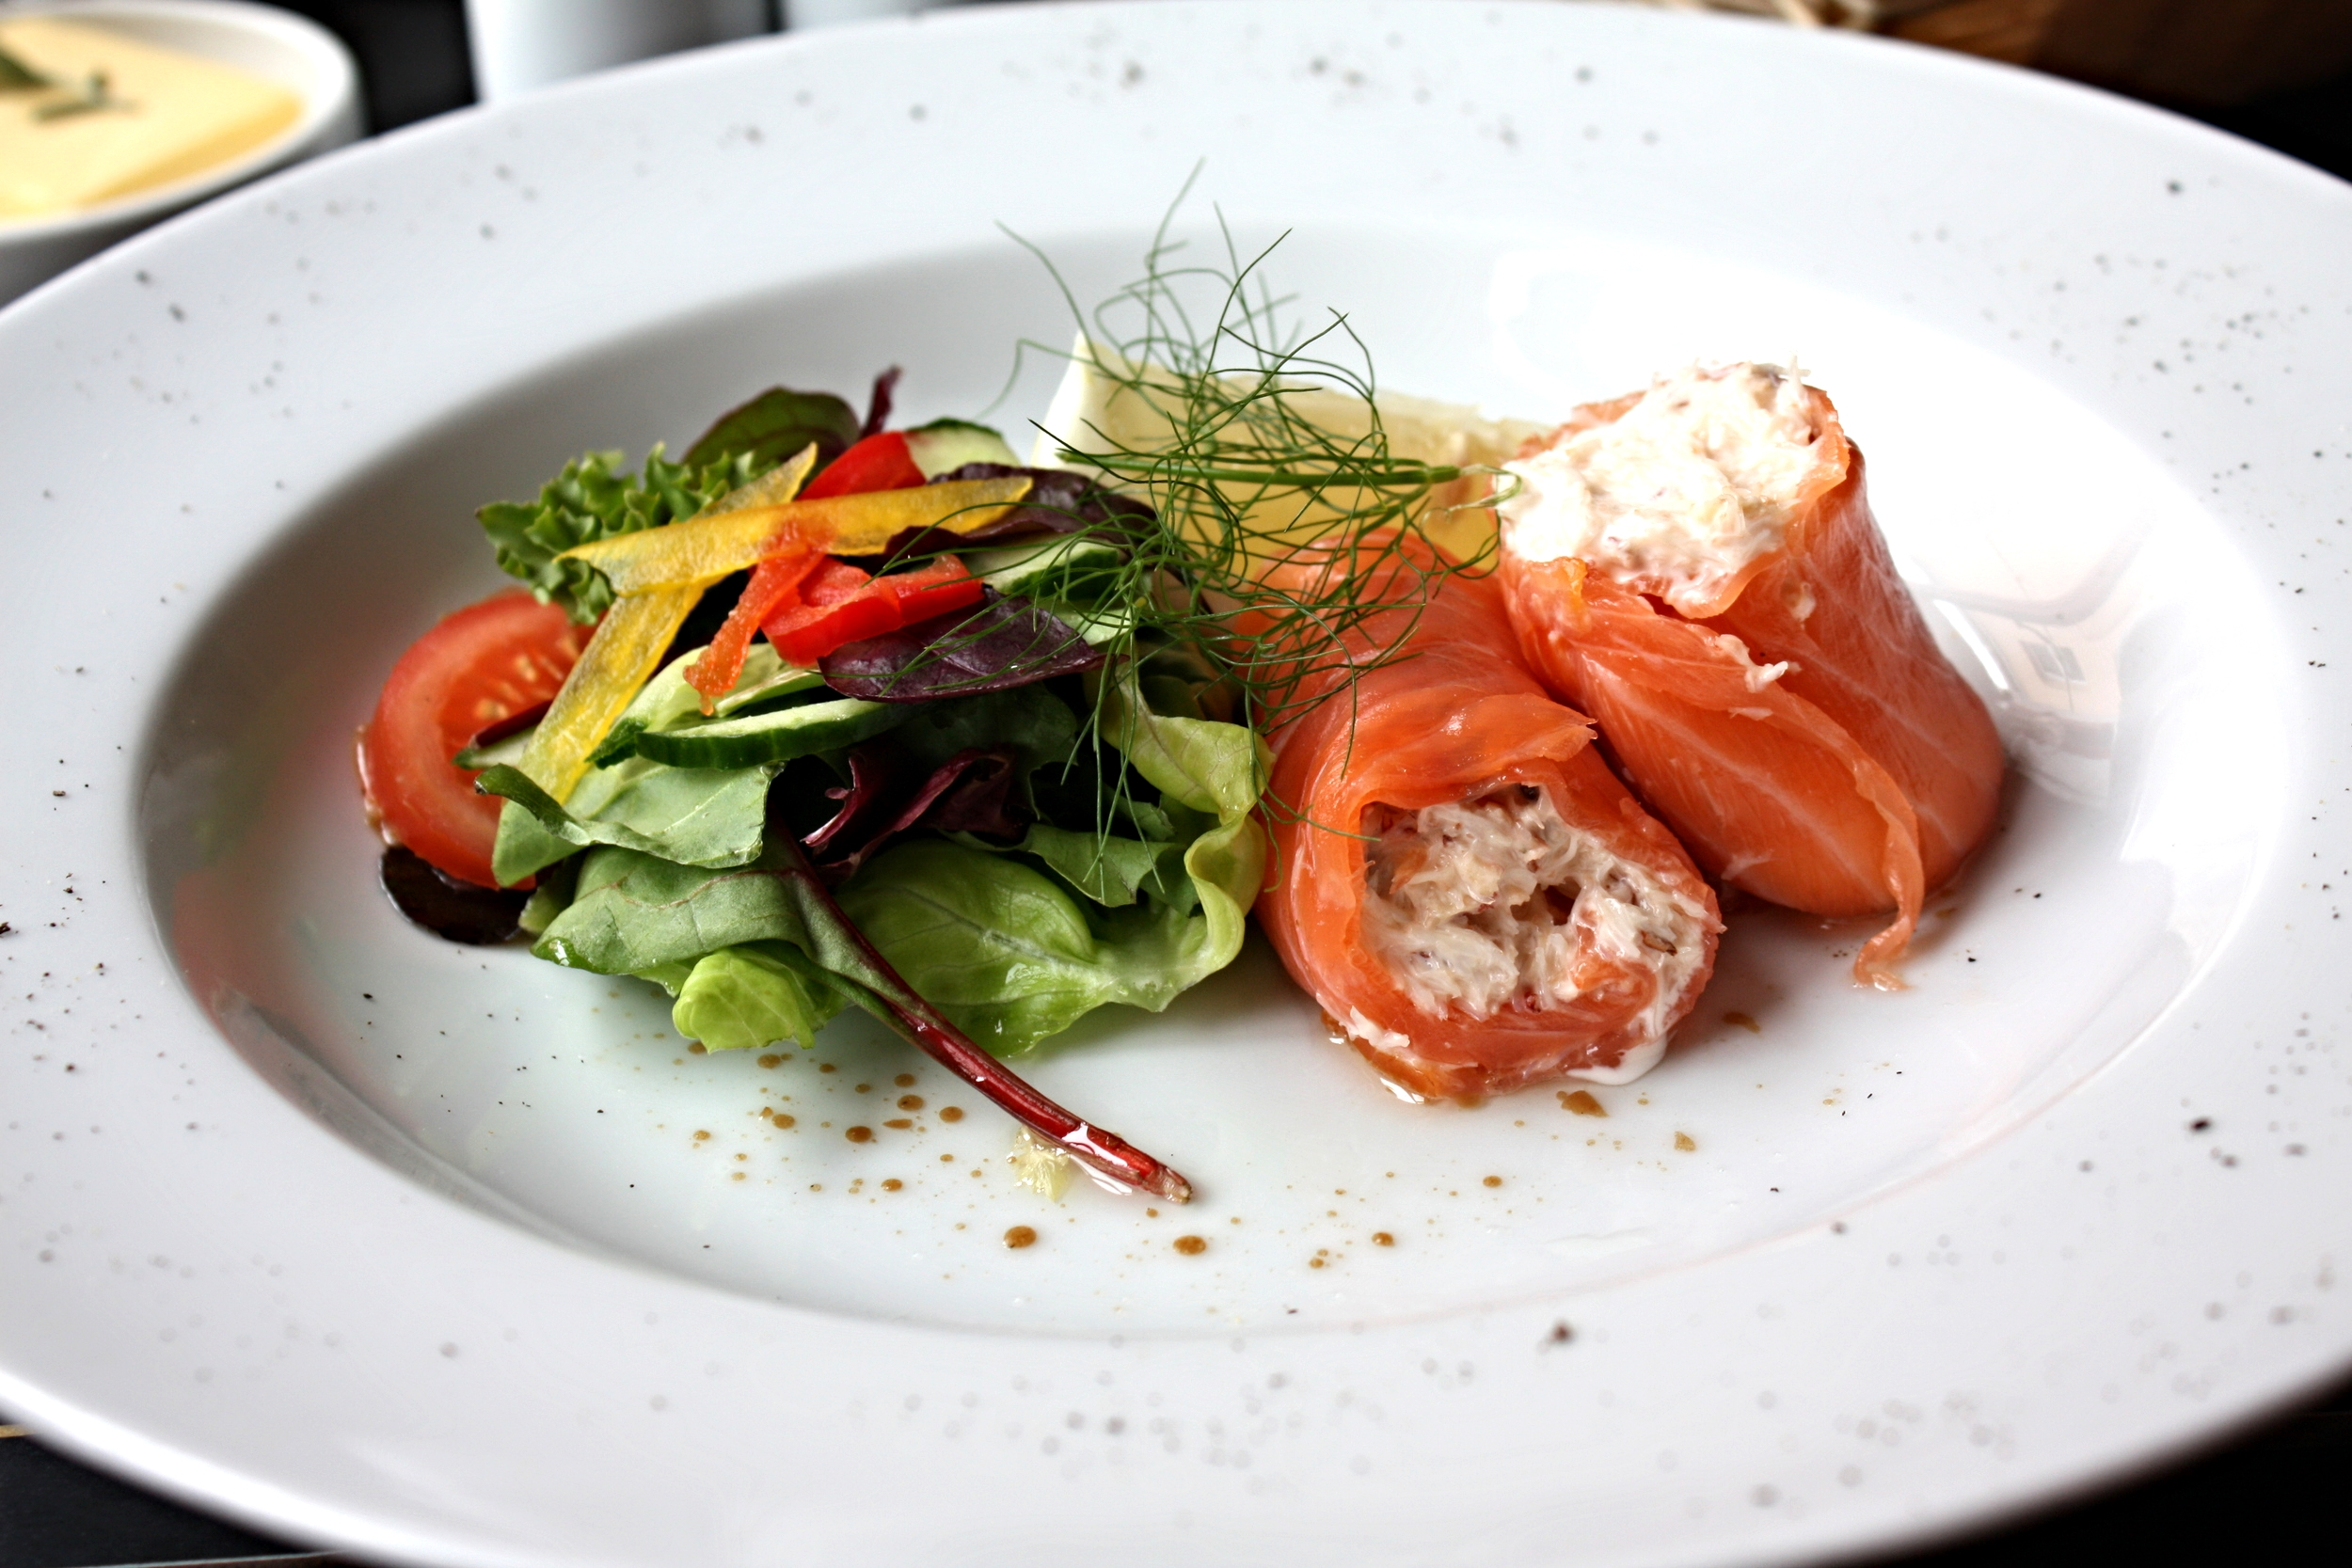 Smoked salmon stuffed with crab mayo (7).JPG